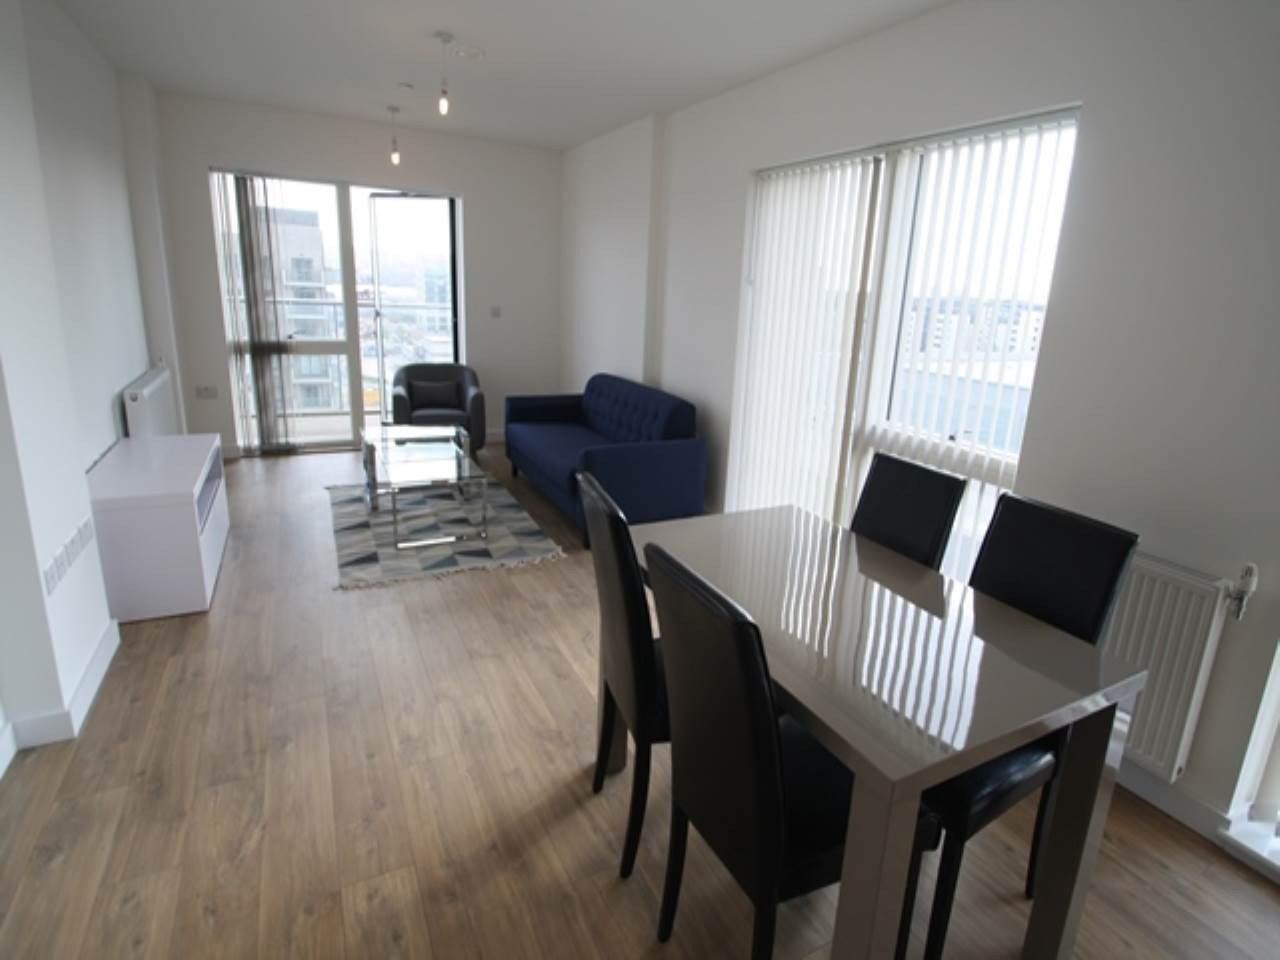 2 bed flat to rent in Royal Docks, E16